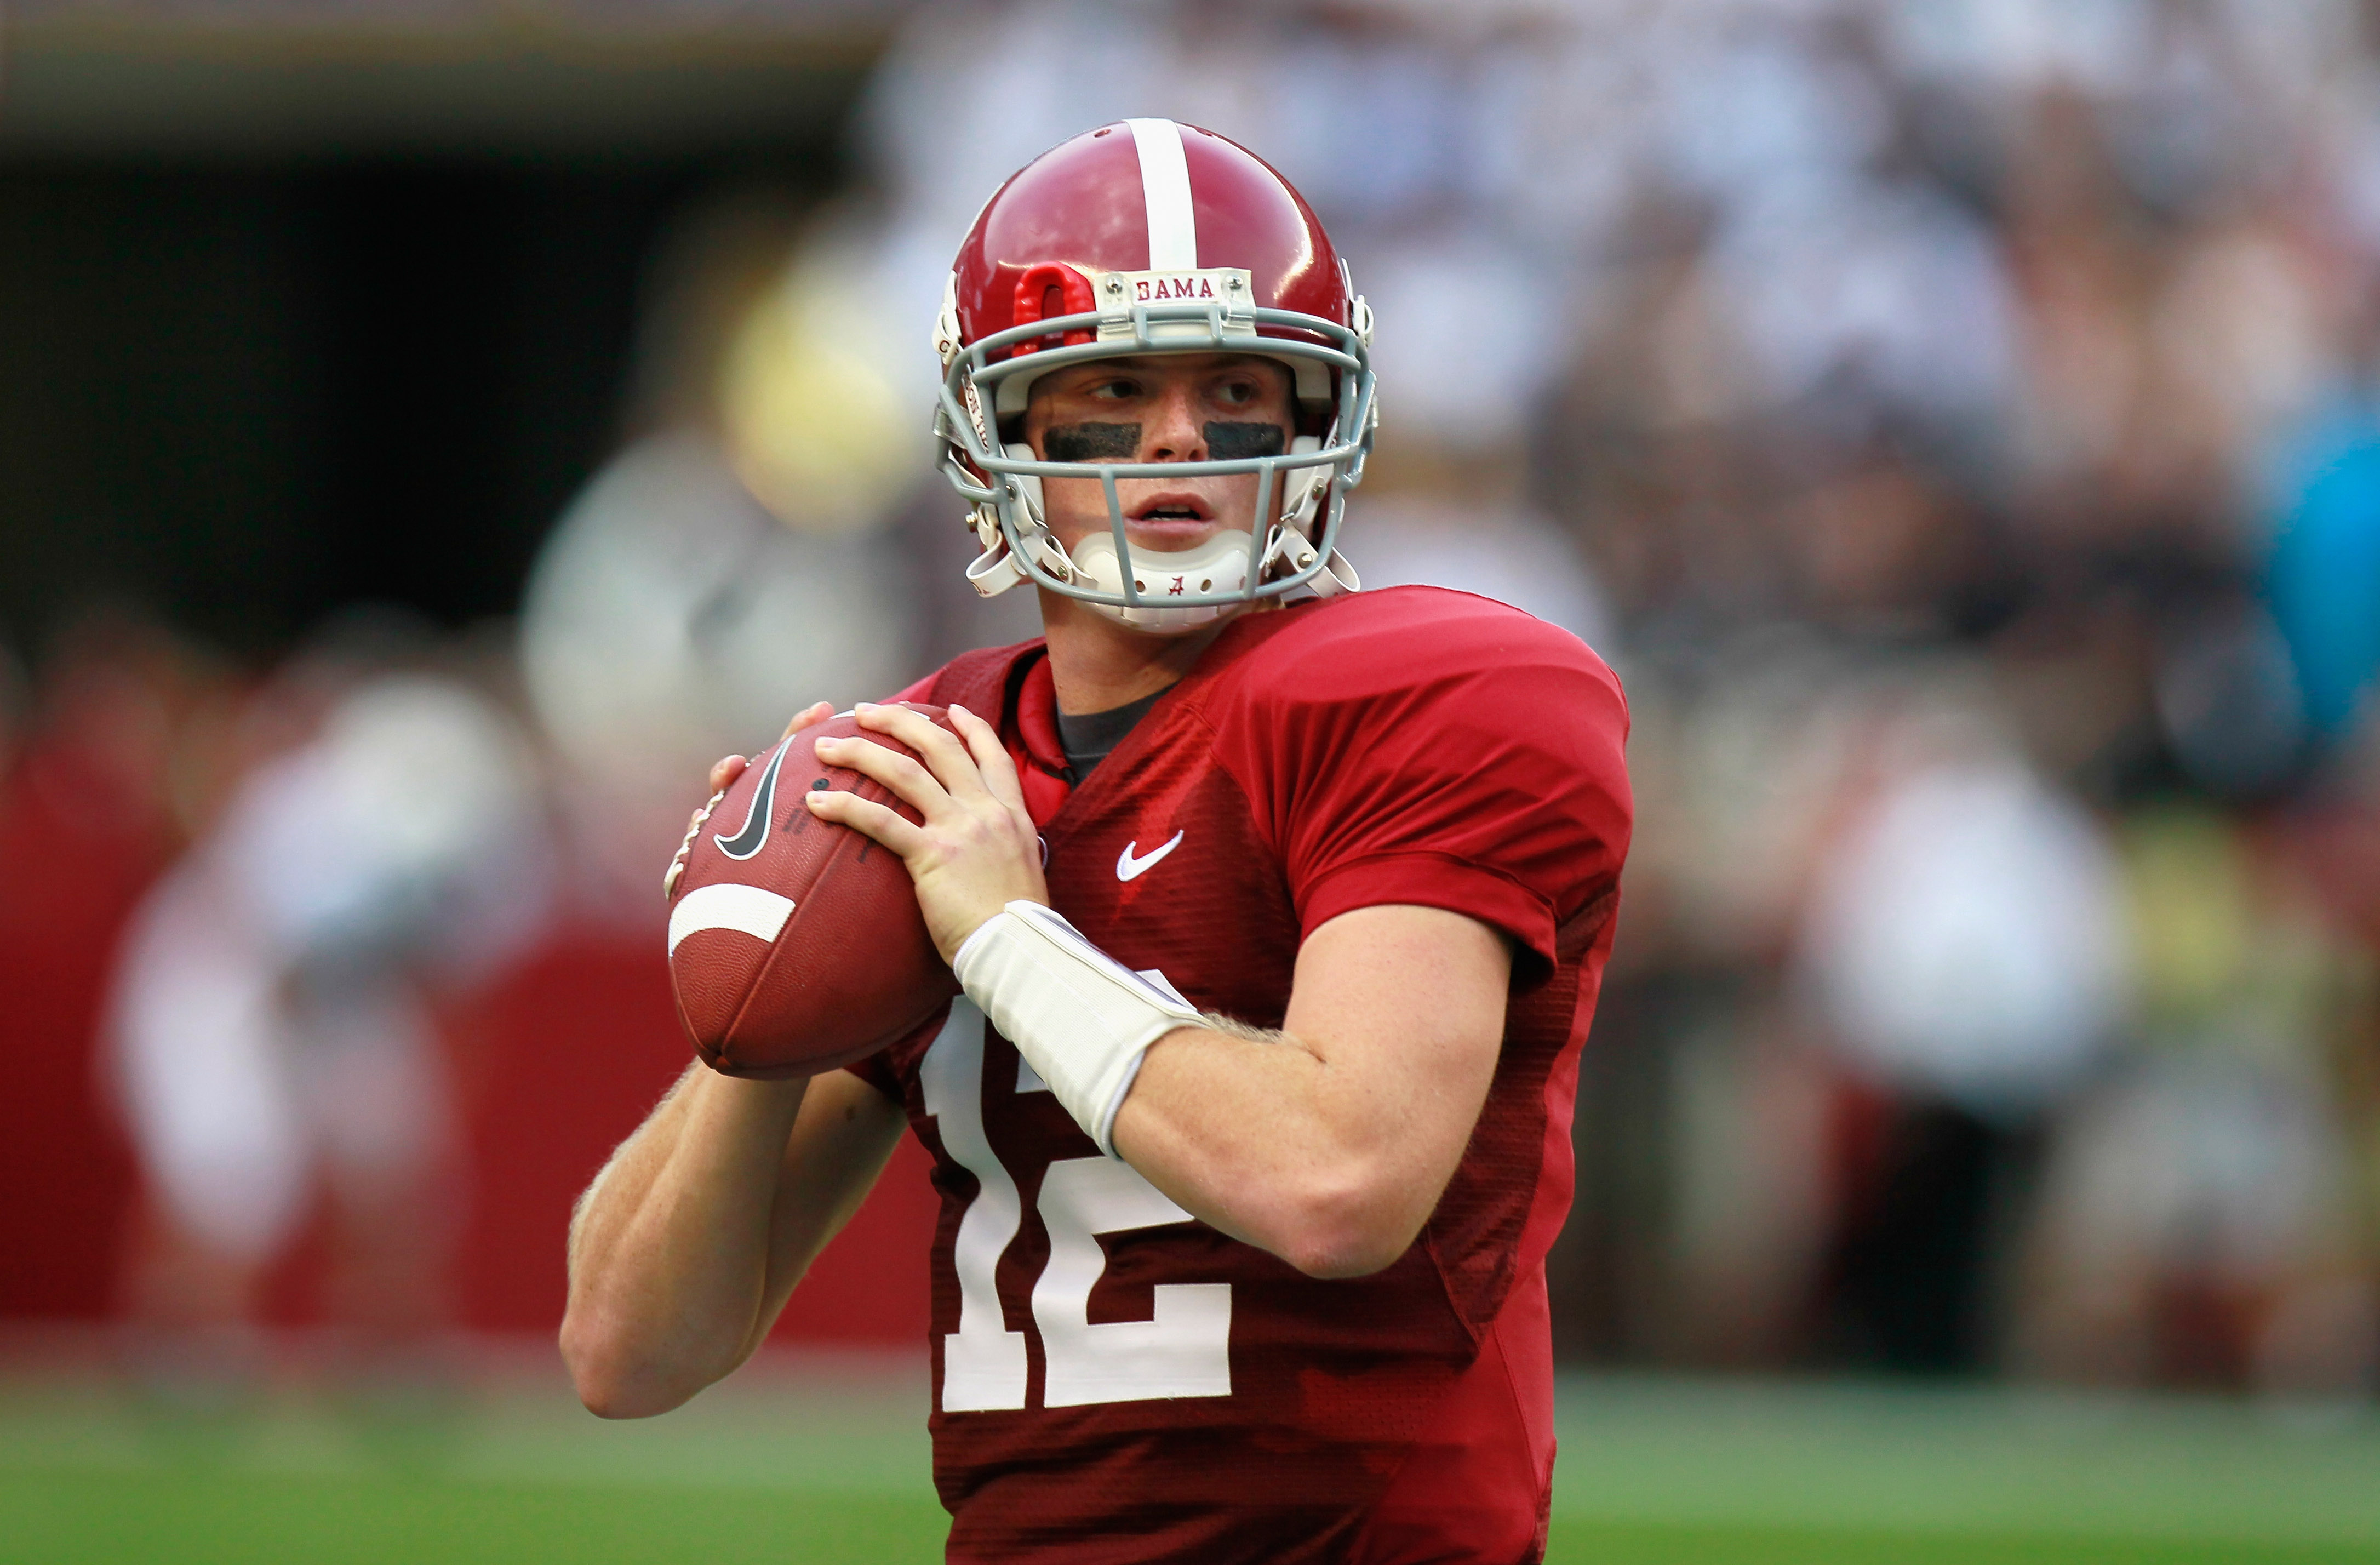 TUSCALOOSA, AL - SEPTEMBER 11:  Quarterback Greg McElroy #12 of the Alabama Crimson Tide against the Penn State Nittany Lions at Bryant-Denny Stadium on September 11, 2010 in Tuscaloosa, Alabama.  (Photo by Kevin C. Cox/Getty Images)